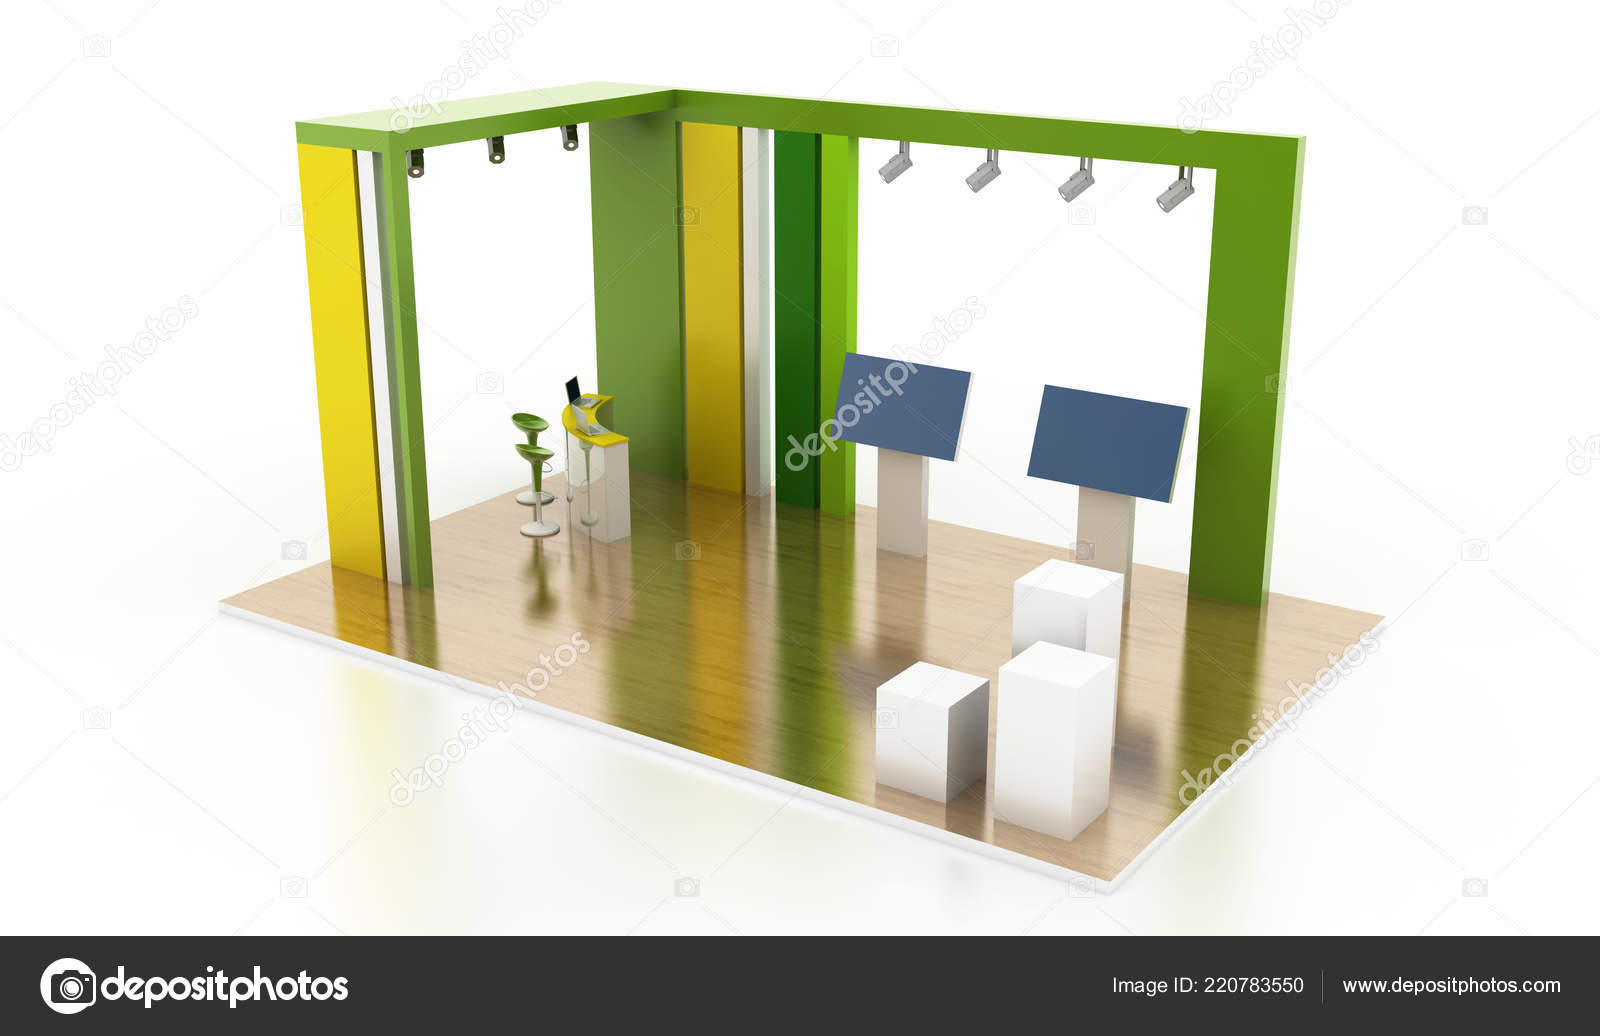 Exhibition Stand Interiors : Green exhibition stand interior original rendering models u stock